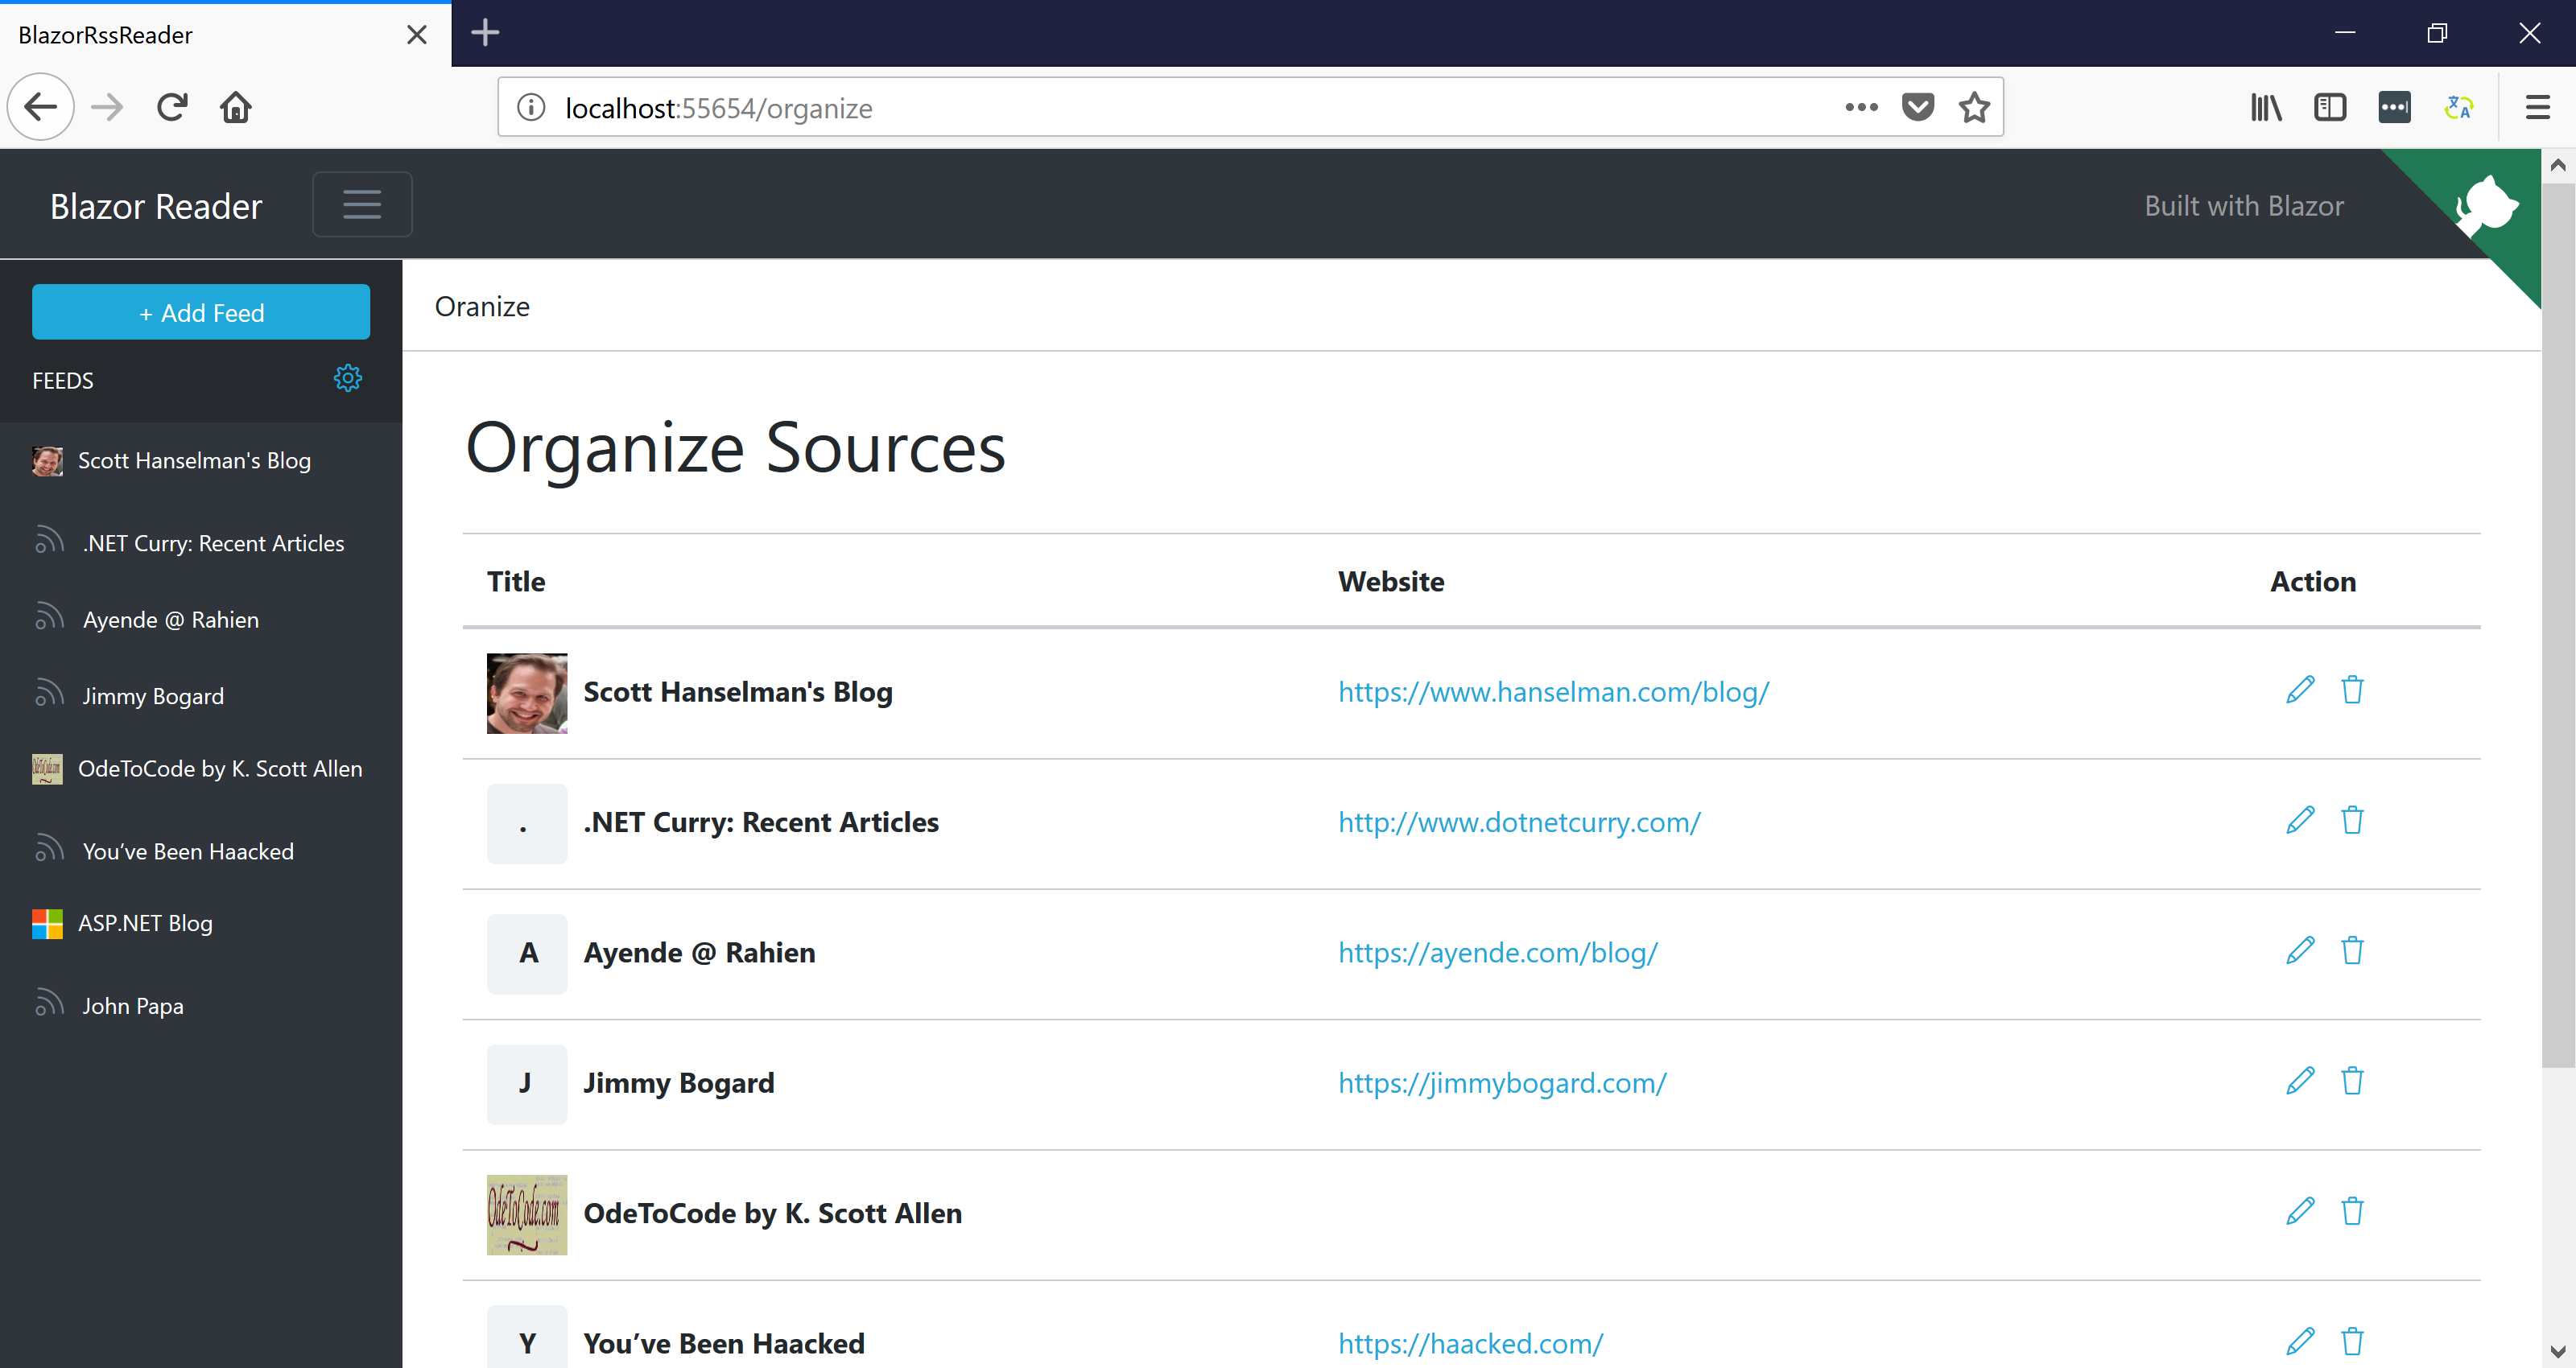 Organize Sources